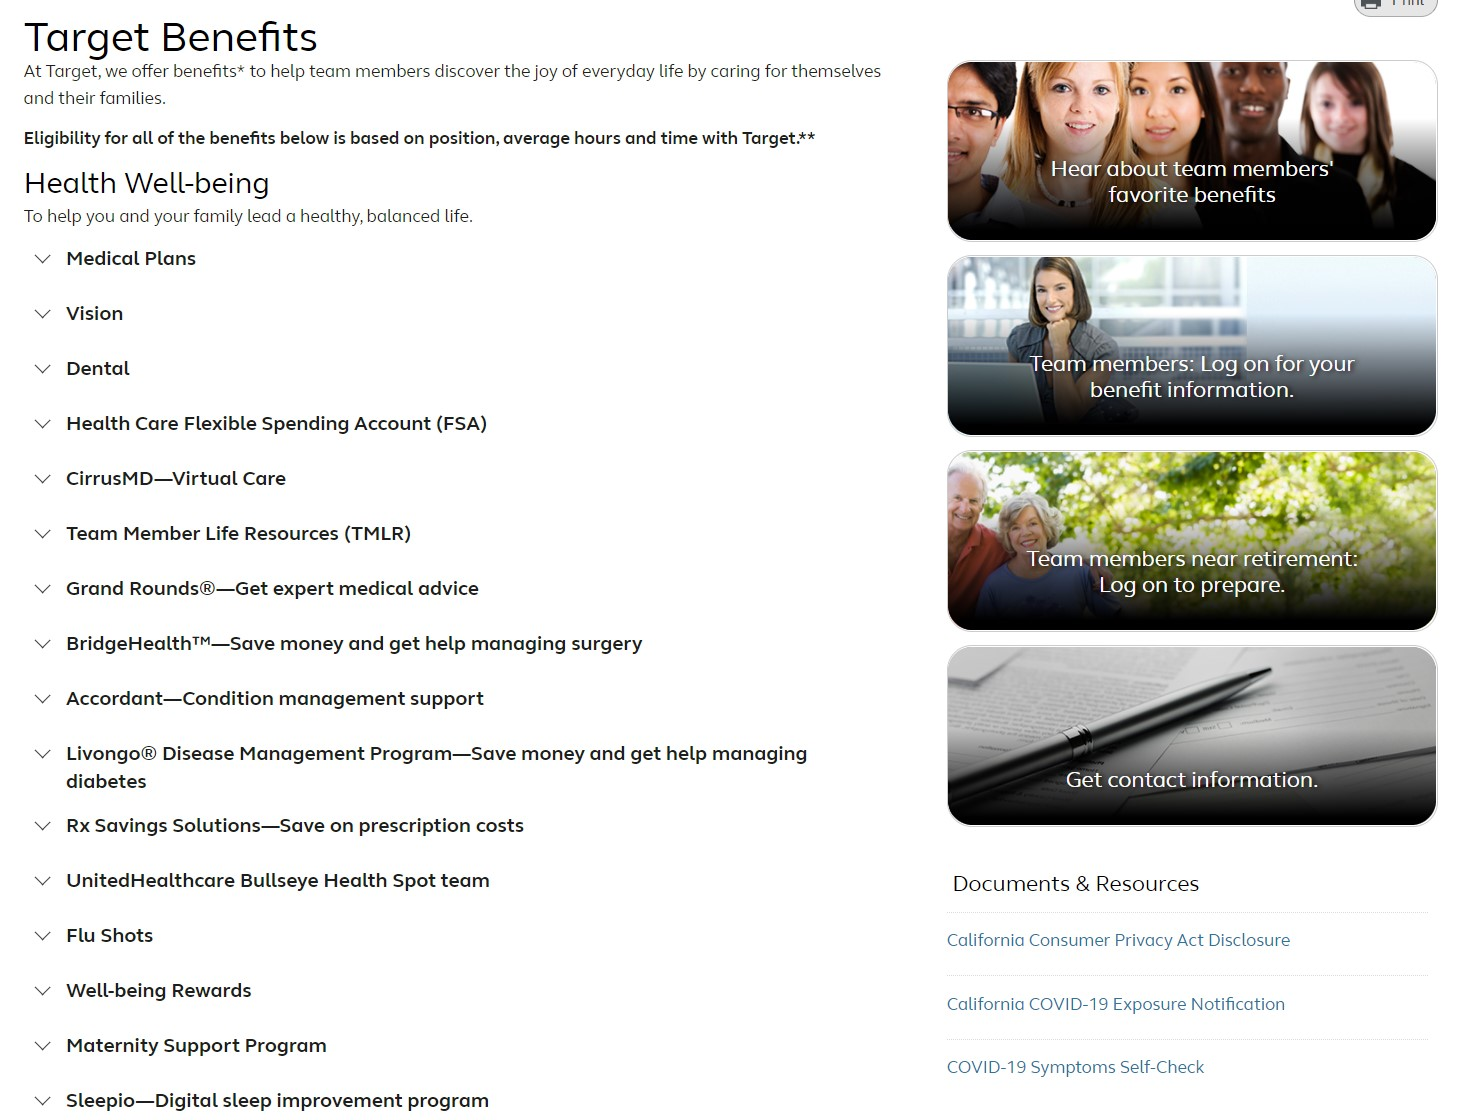 TargetPayandBenefits – Target Pay and Benefits For Employees